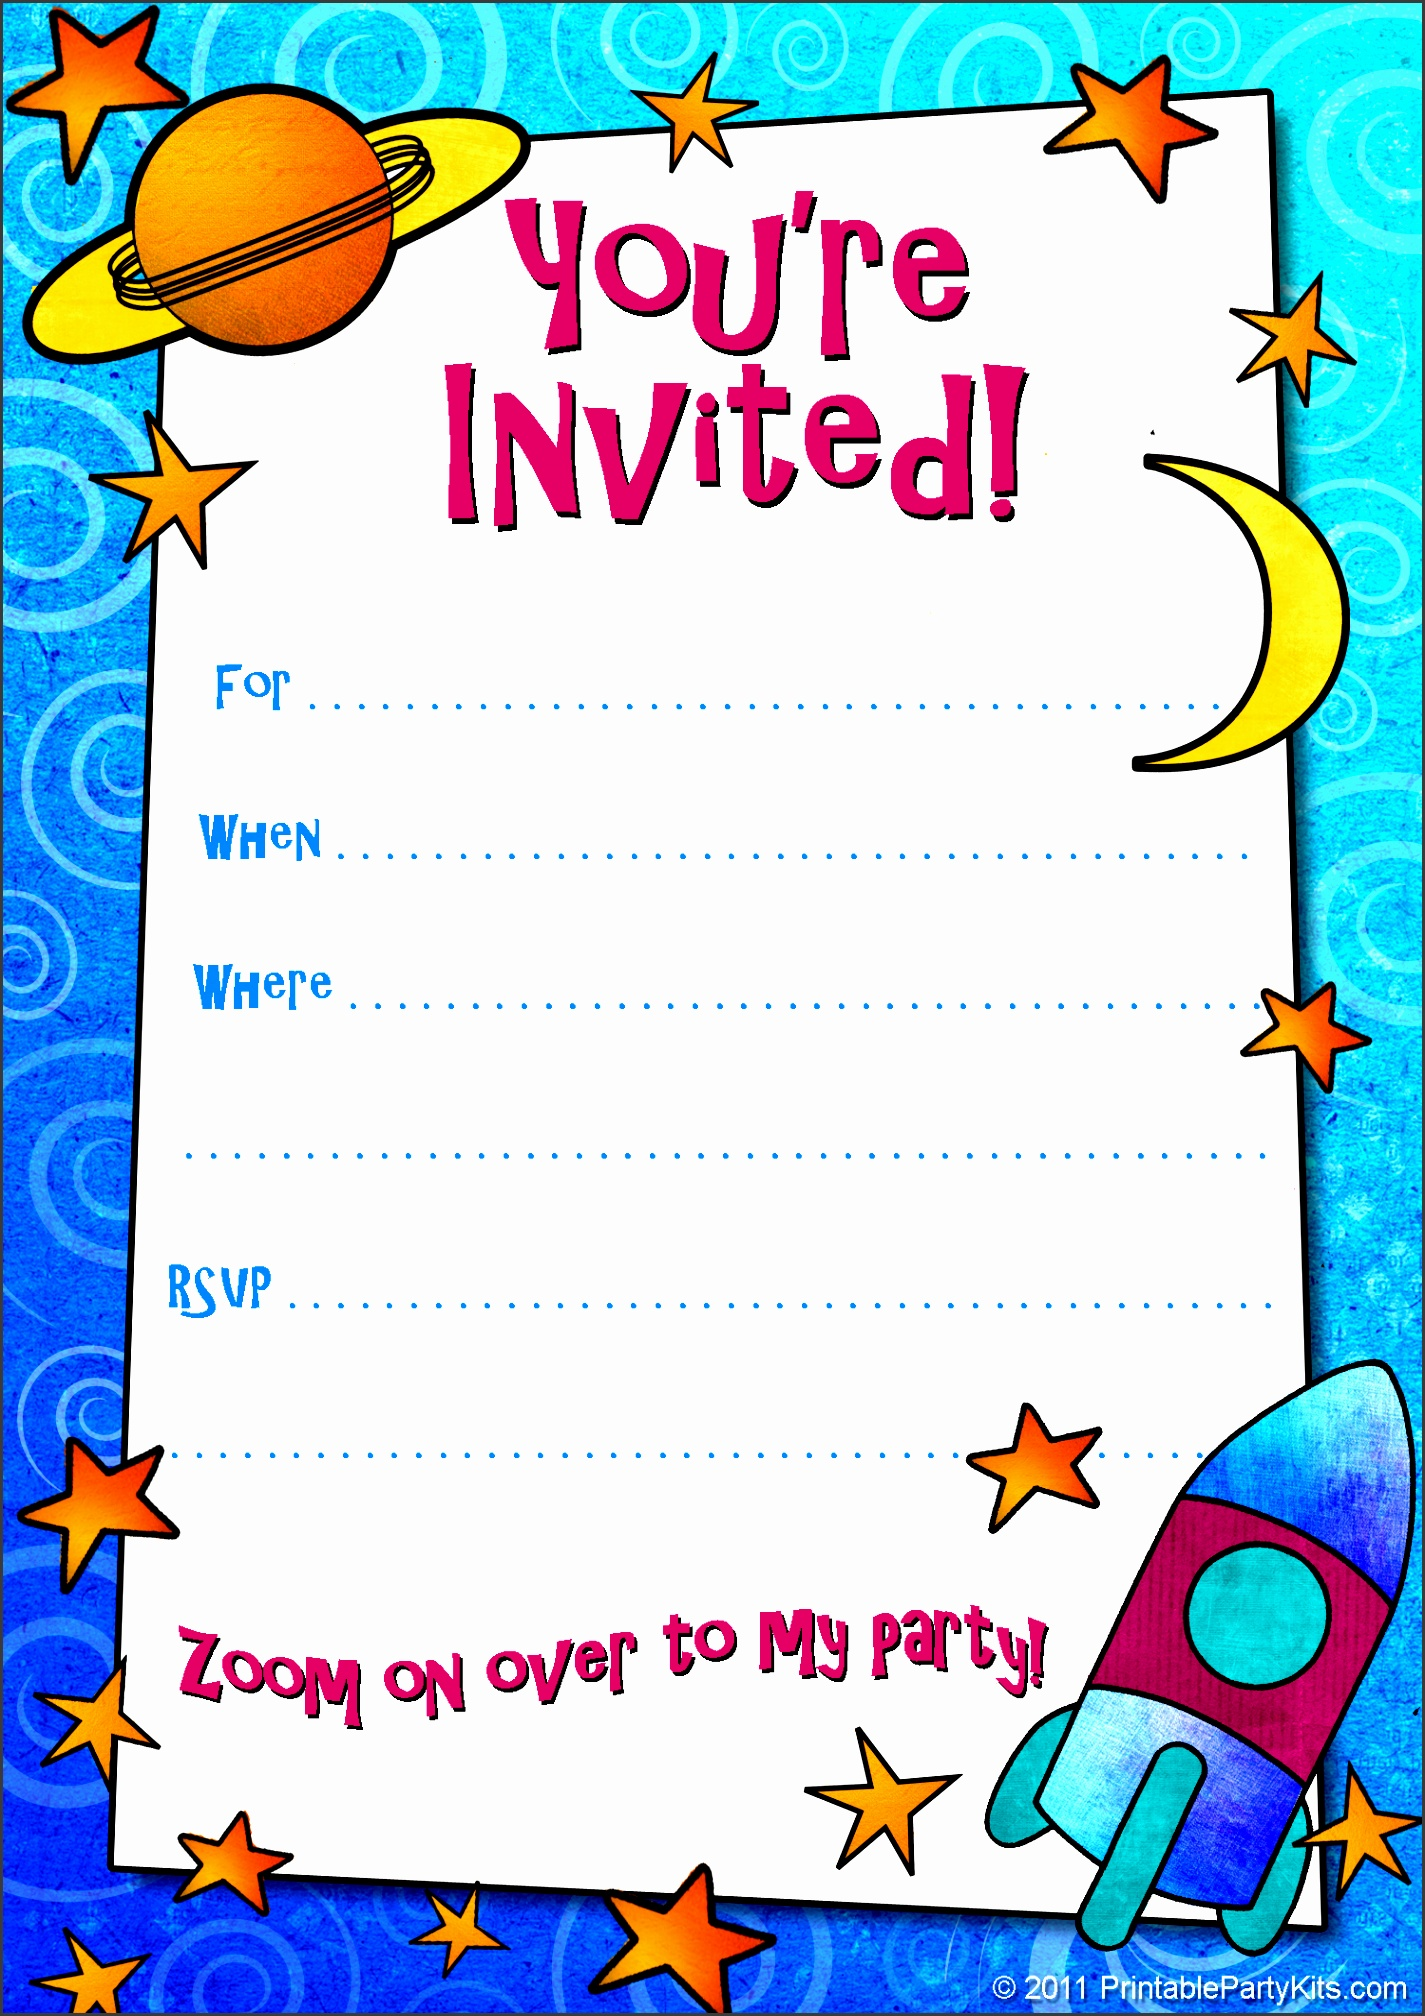 House Party Invitation Templates Sampletemplatess christmas card ...